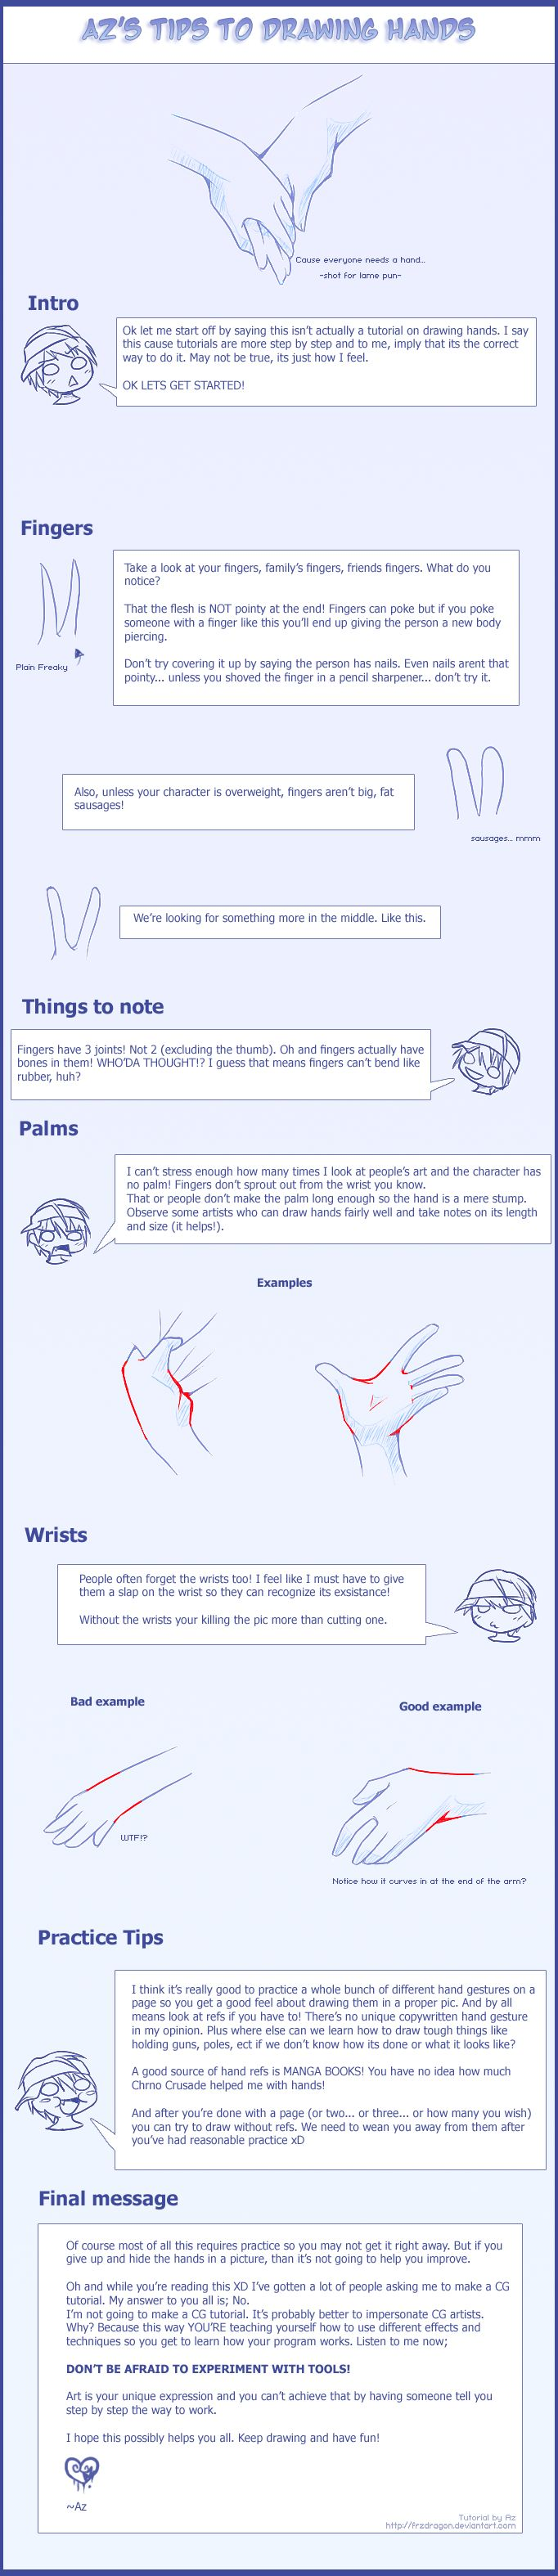 Az's Tips to Drawing Hands by *Uberzers on deviantART